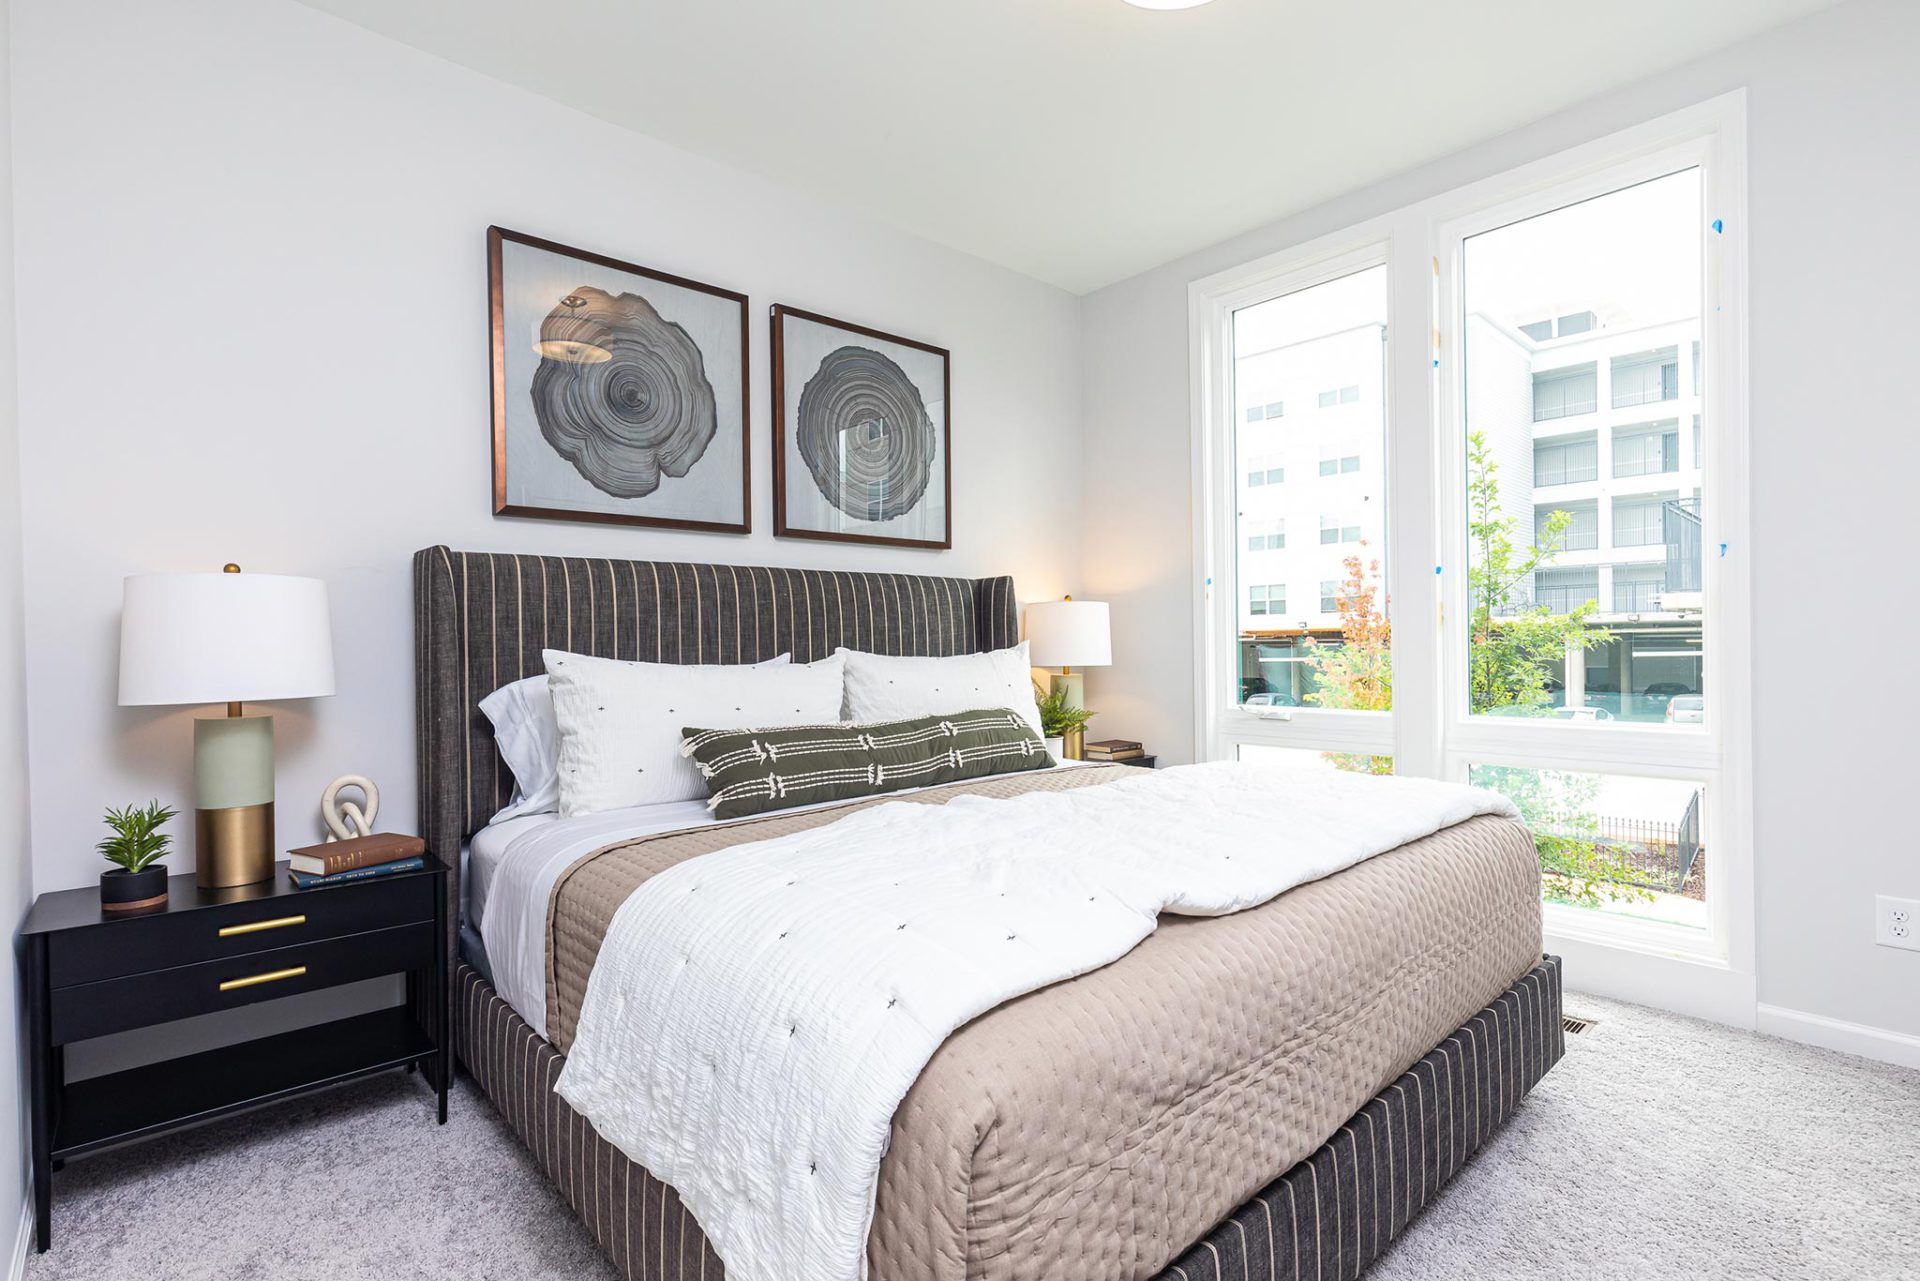 Step Inside Our Designer Townhome at 4Forty4 in Old Fourth Wardimage_block-block_5f62394d70149